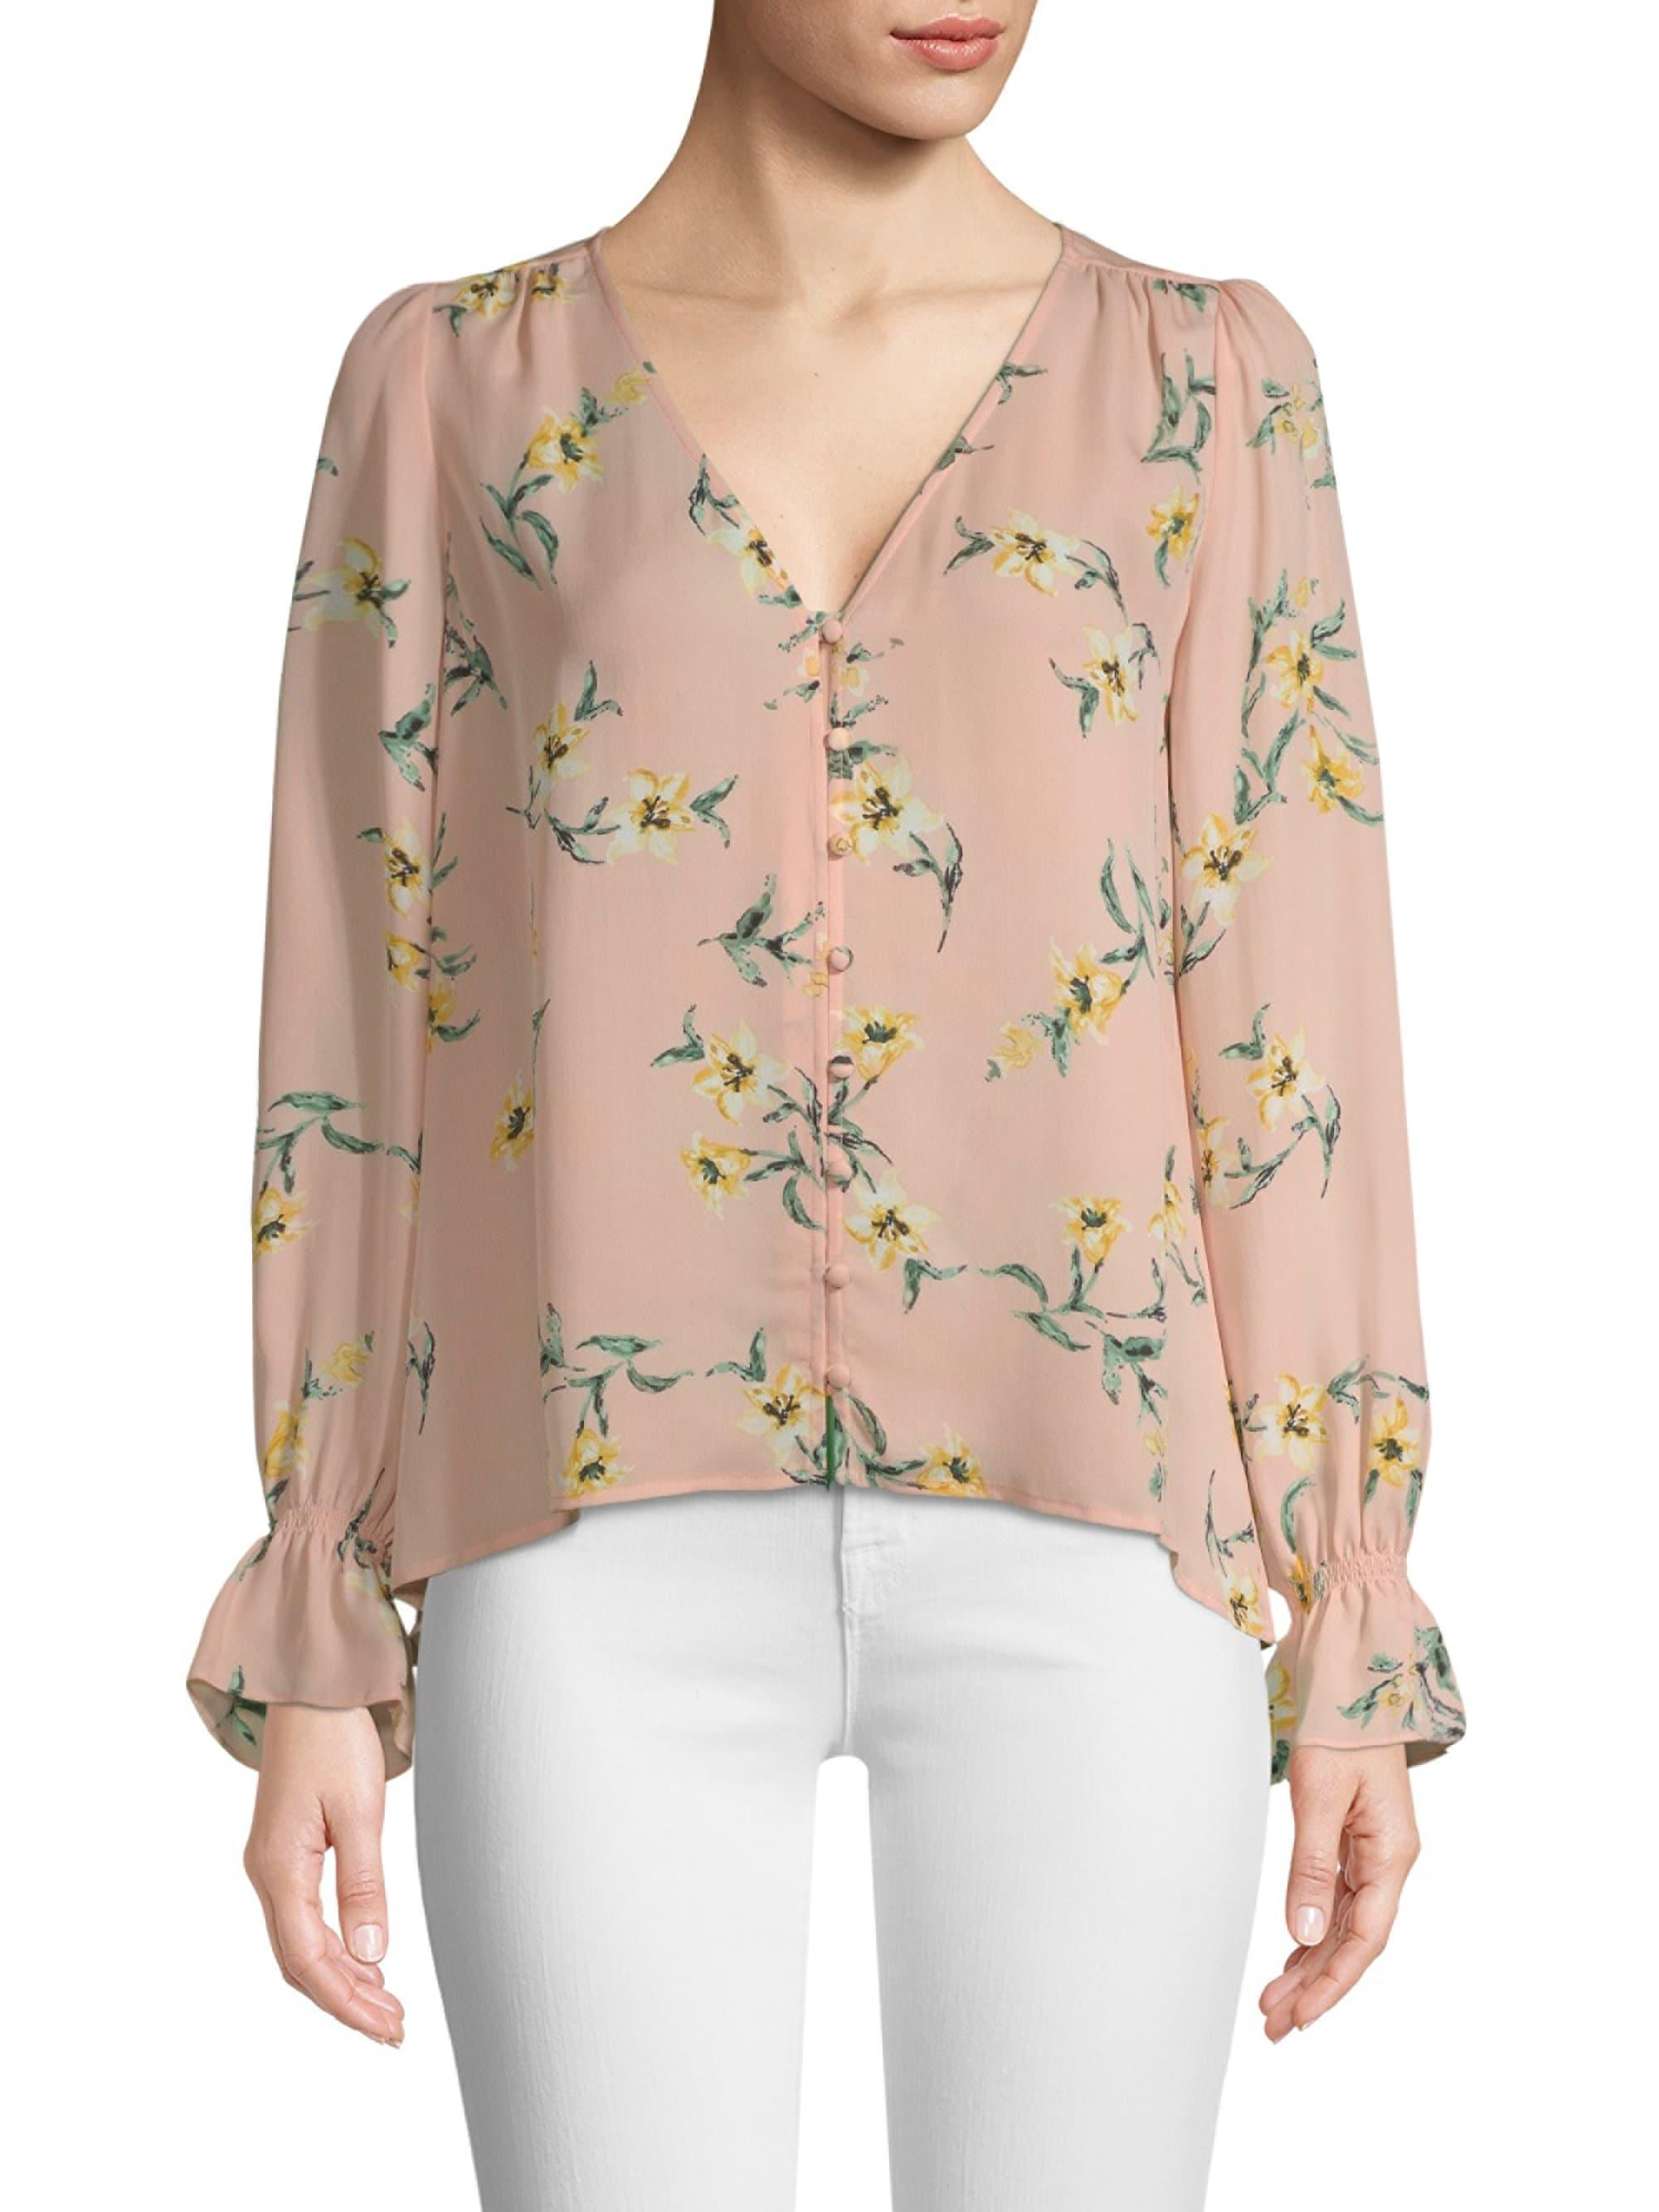 05b3fbcfbc7e Joie Bolona Silk Floral Blouse in Natural - Lyst